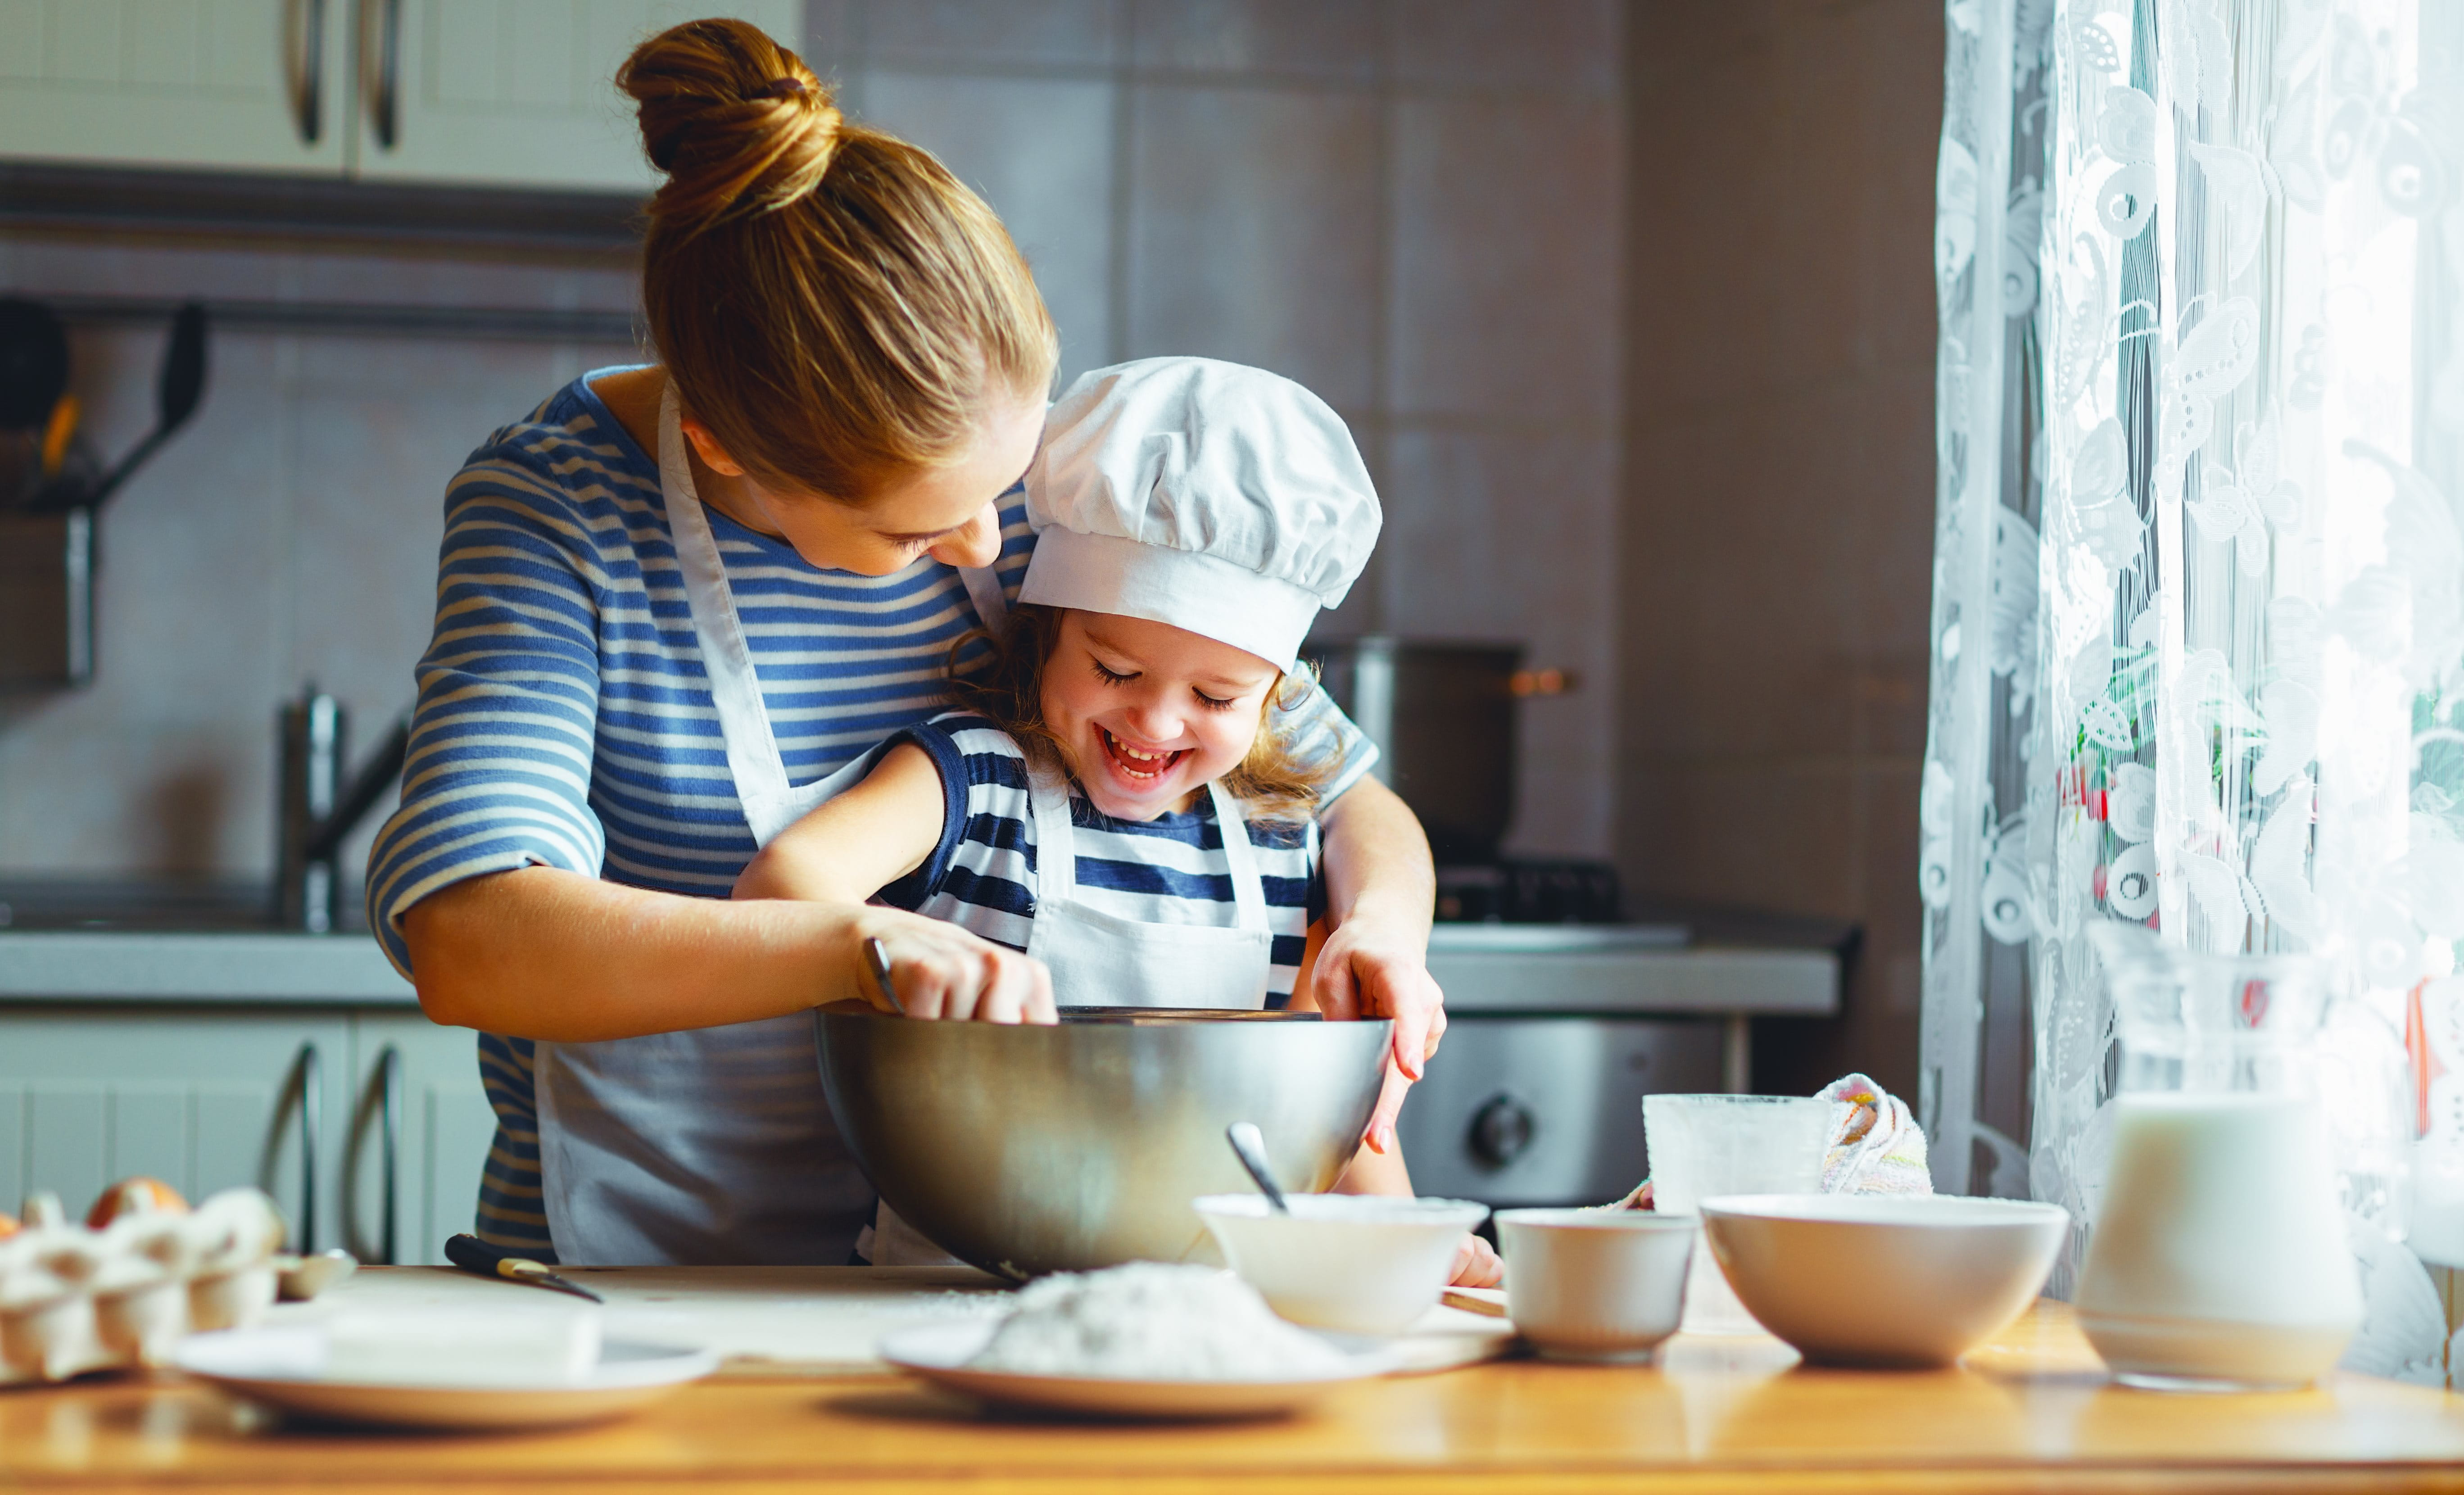 Woman and child baking in kitchen